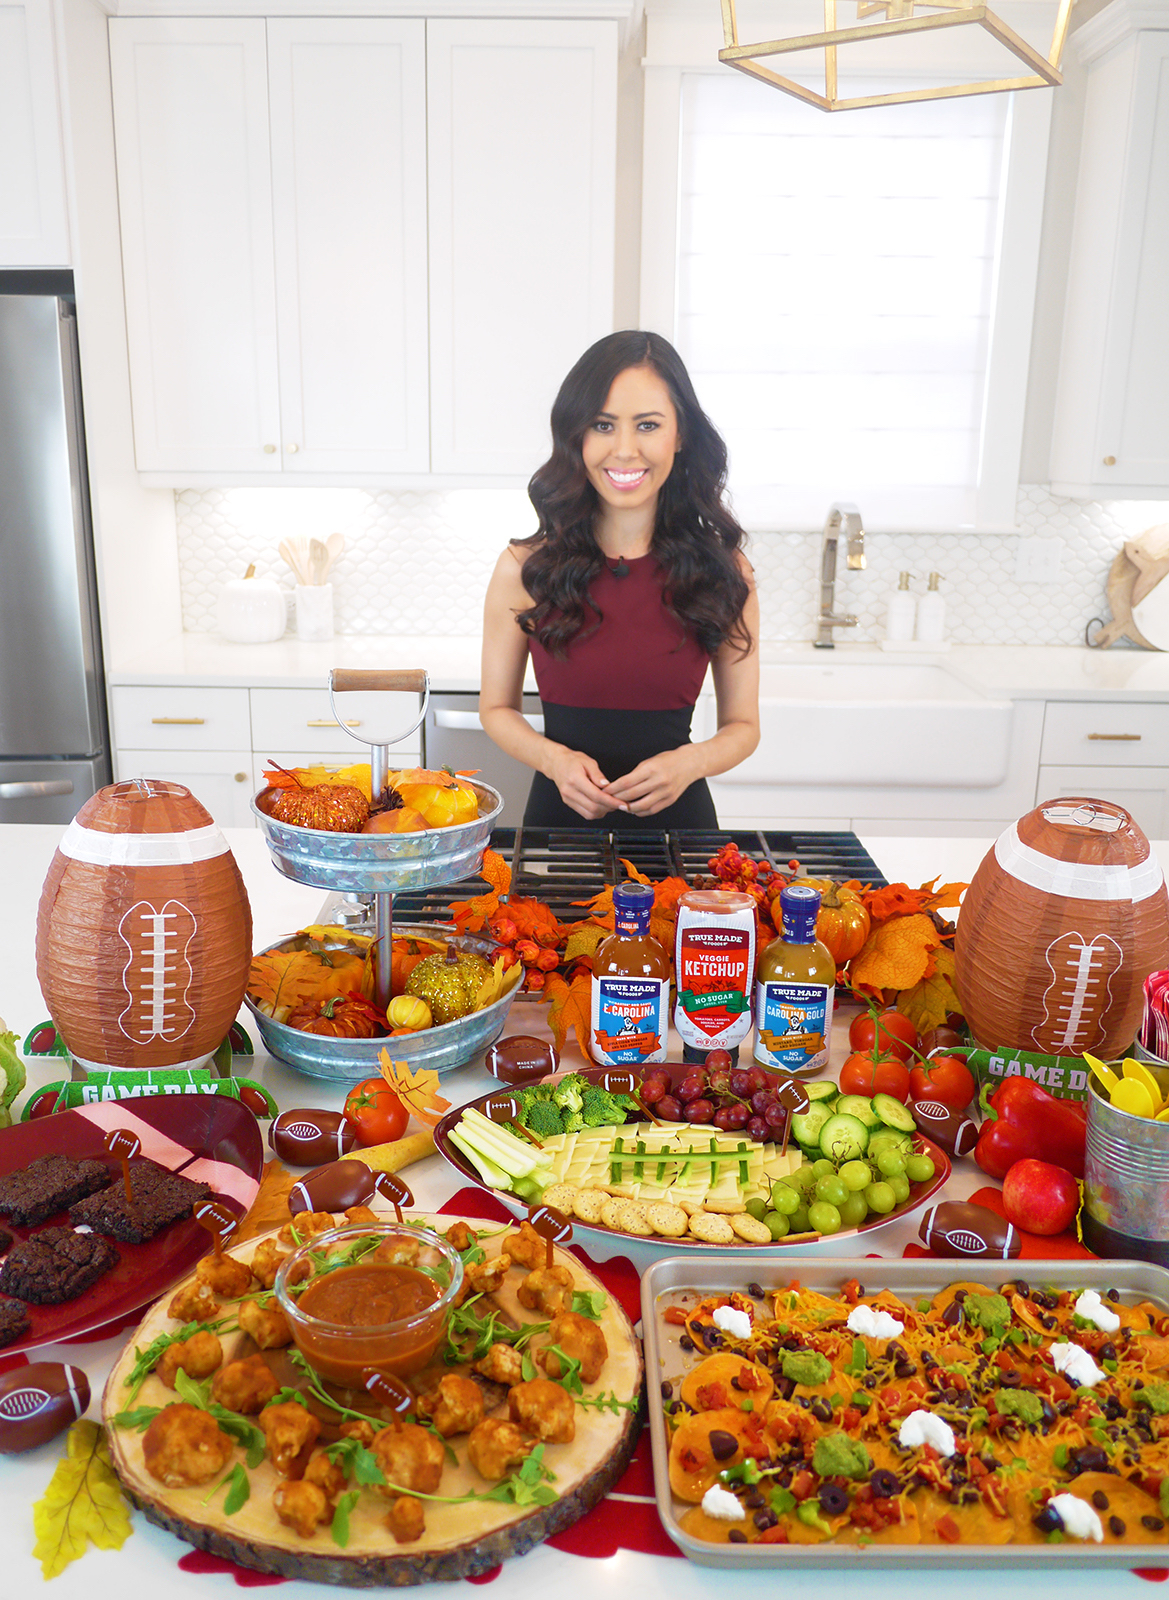 homegating, healthy  tailgating, morning break, cbs wtoc-tv, True Made Foods vegetable-sweetened condiments, Celebrity Leading Media TV Registered Dietitian Nutritionist Mia Syn